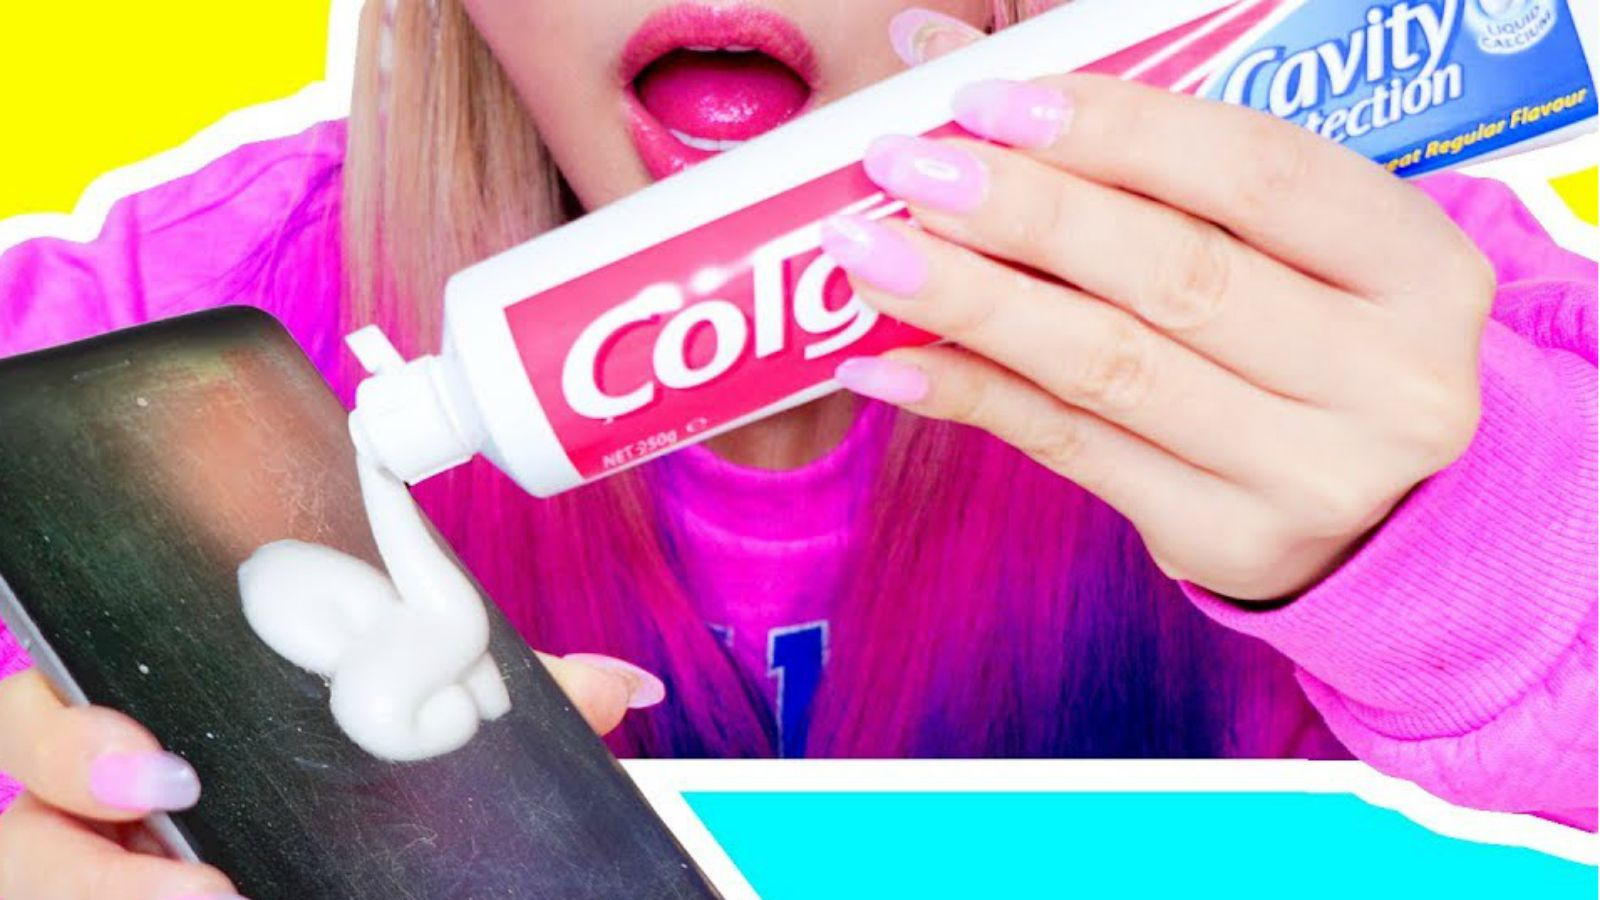 15 Useful Toothpaste Hacks You Should Know To Make Life Easier.